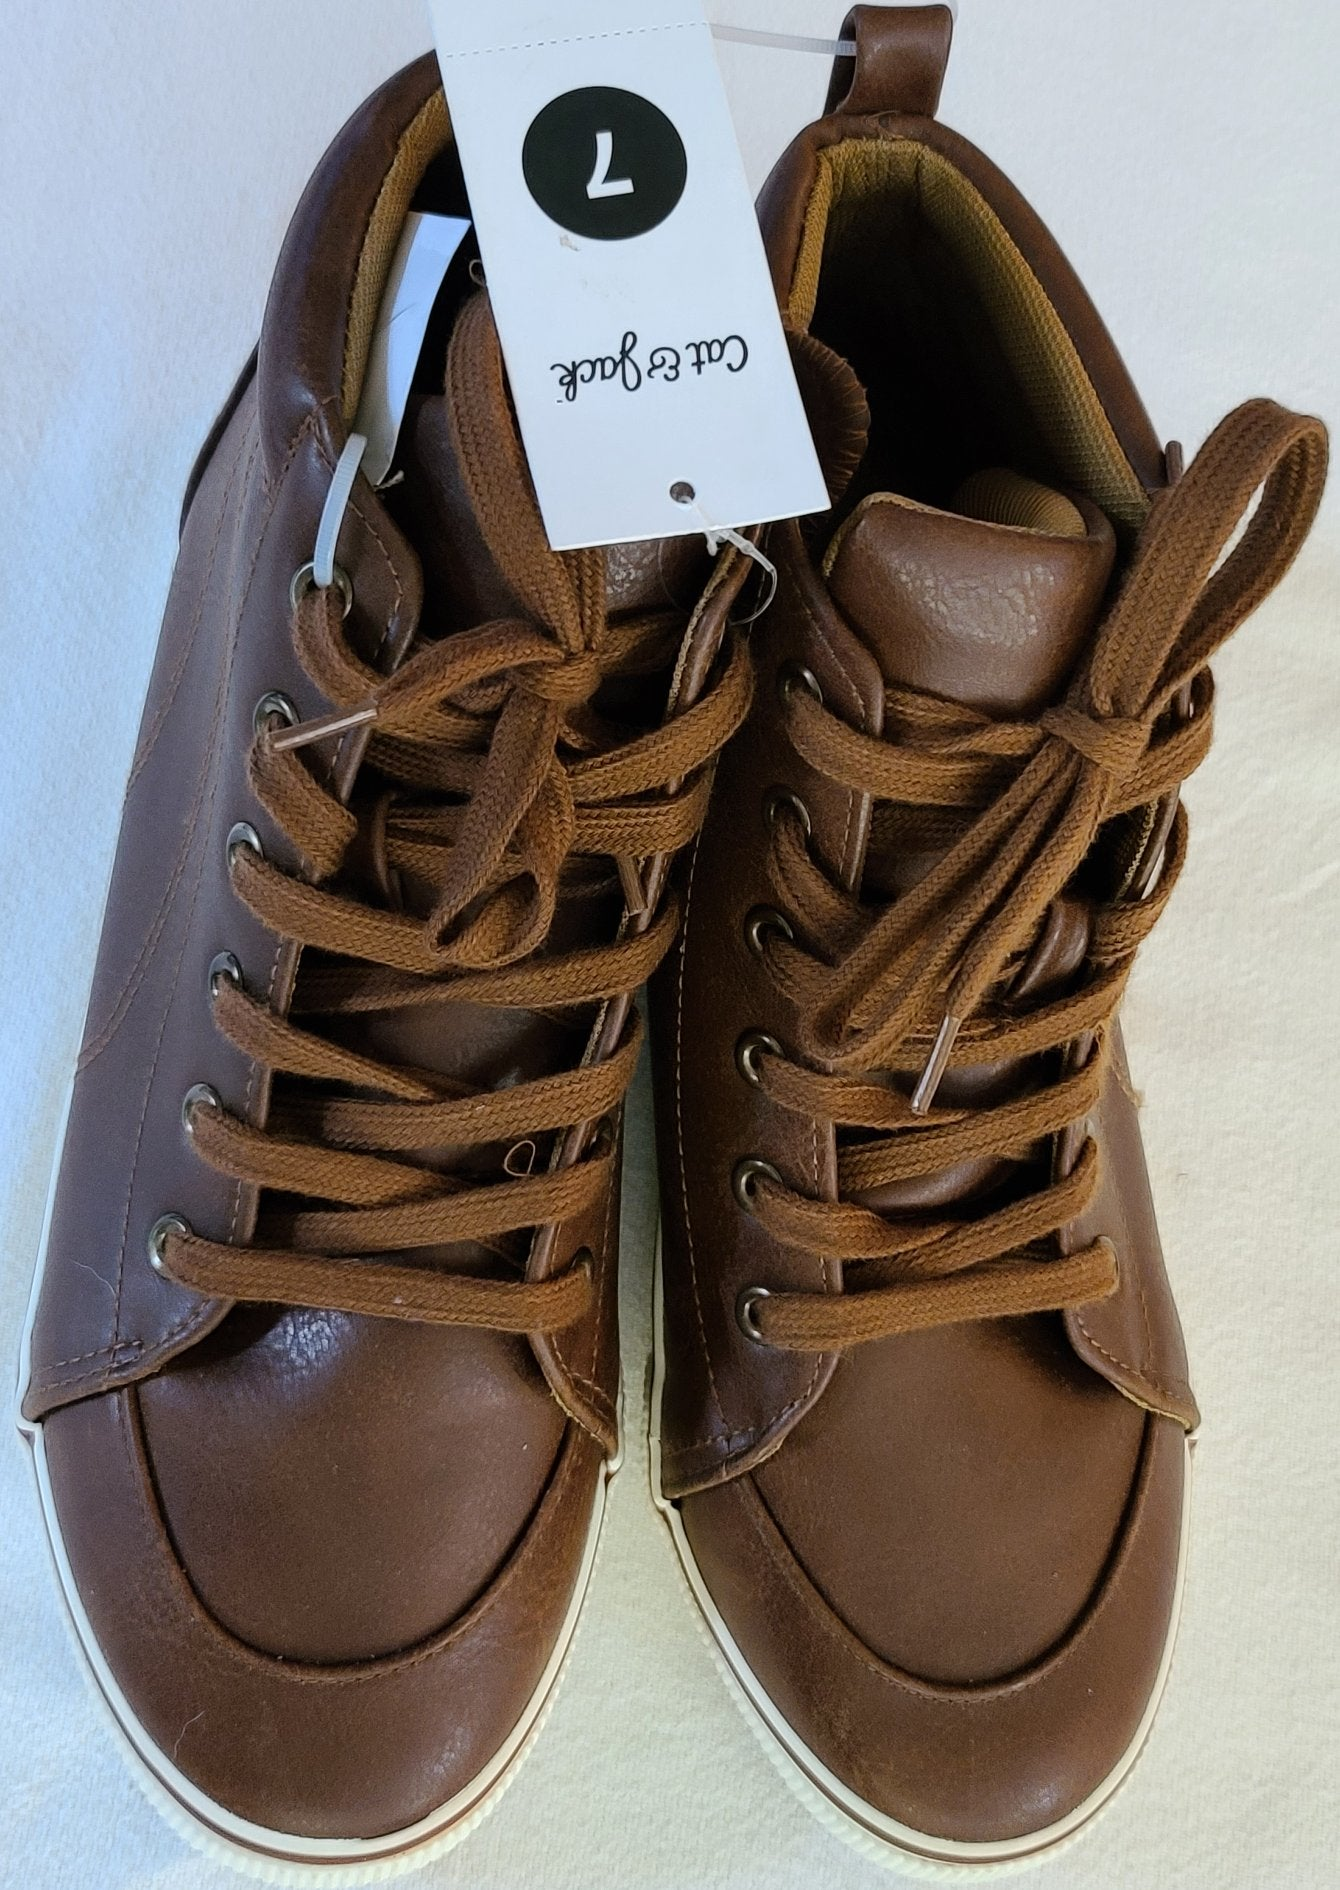 *NWT* CAT & JACK casual high top shoes, Big Boys Size 7